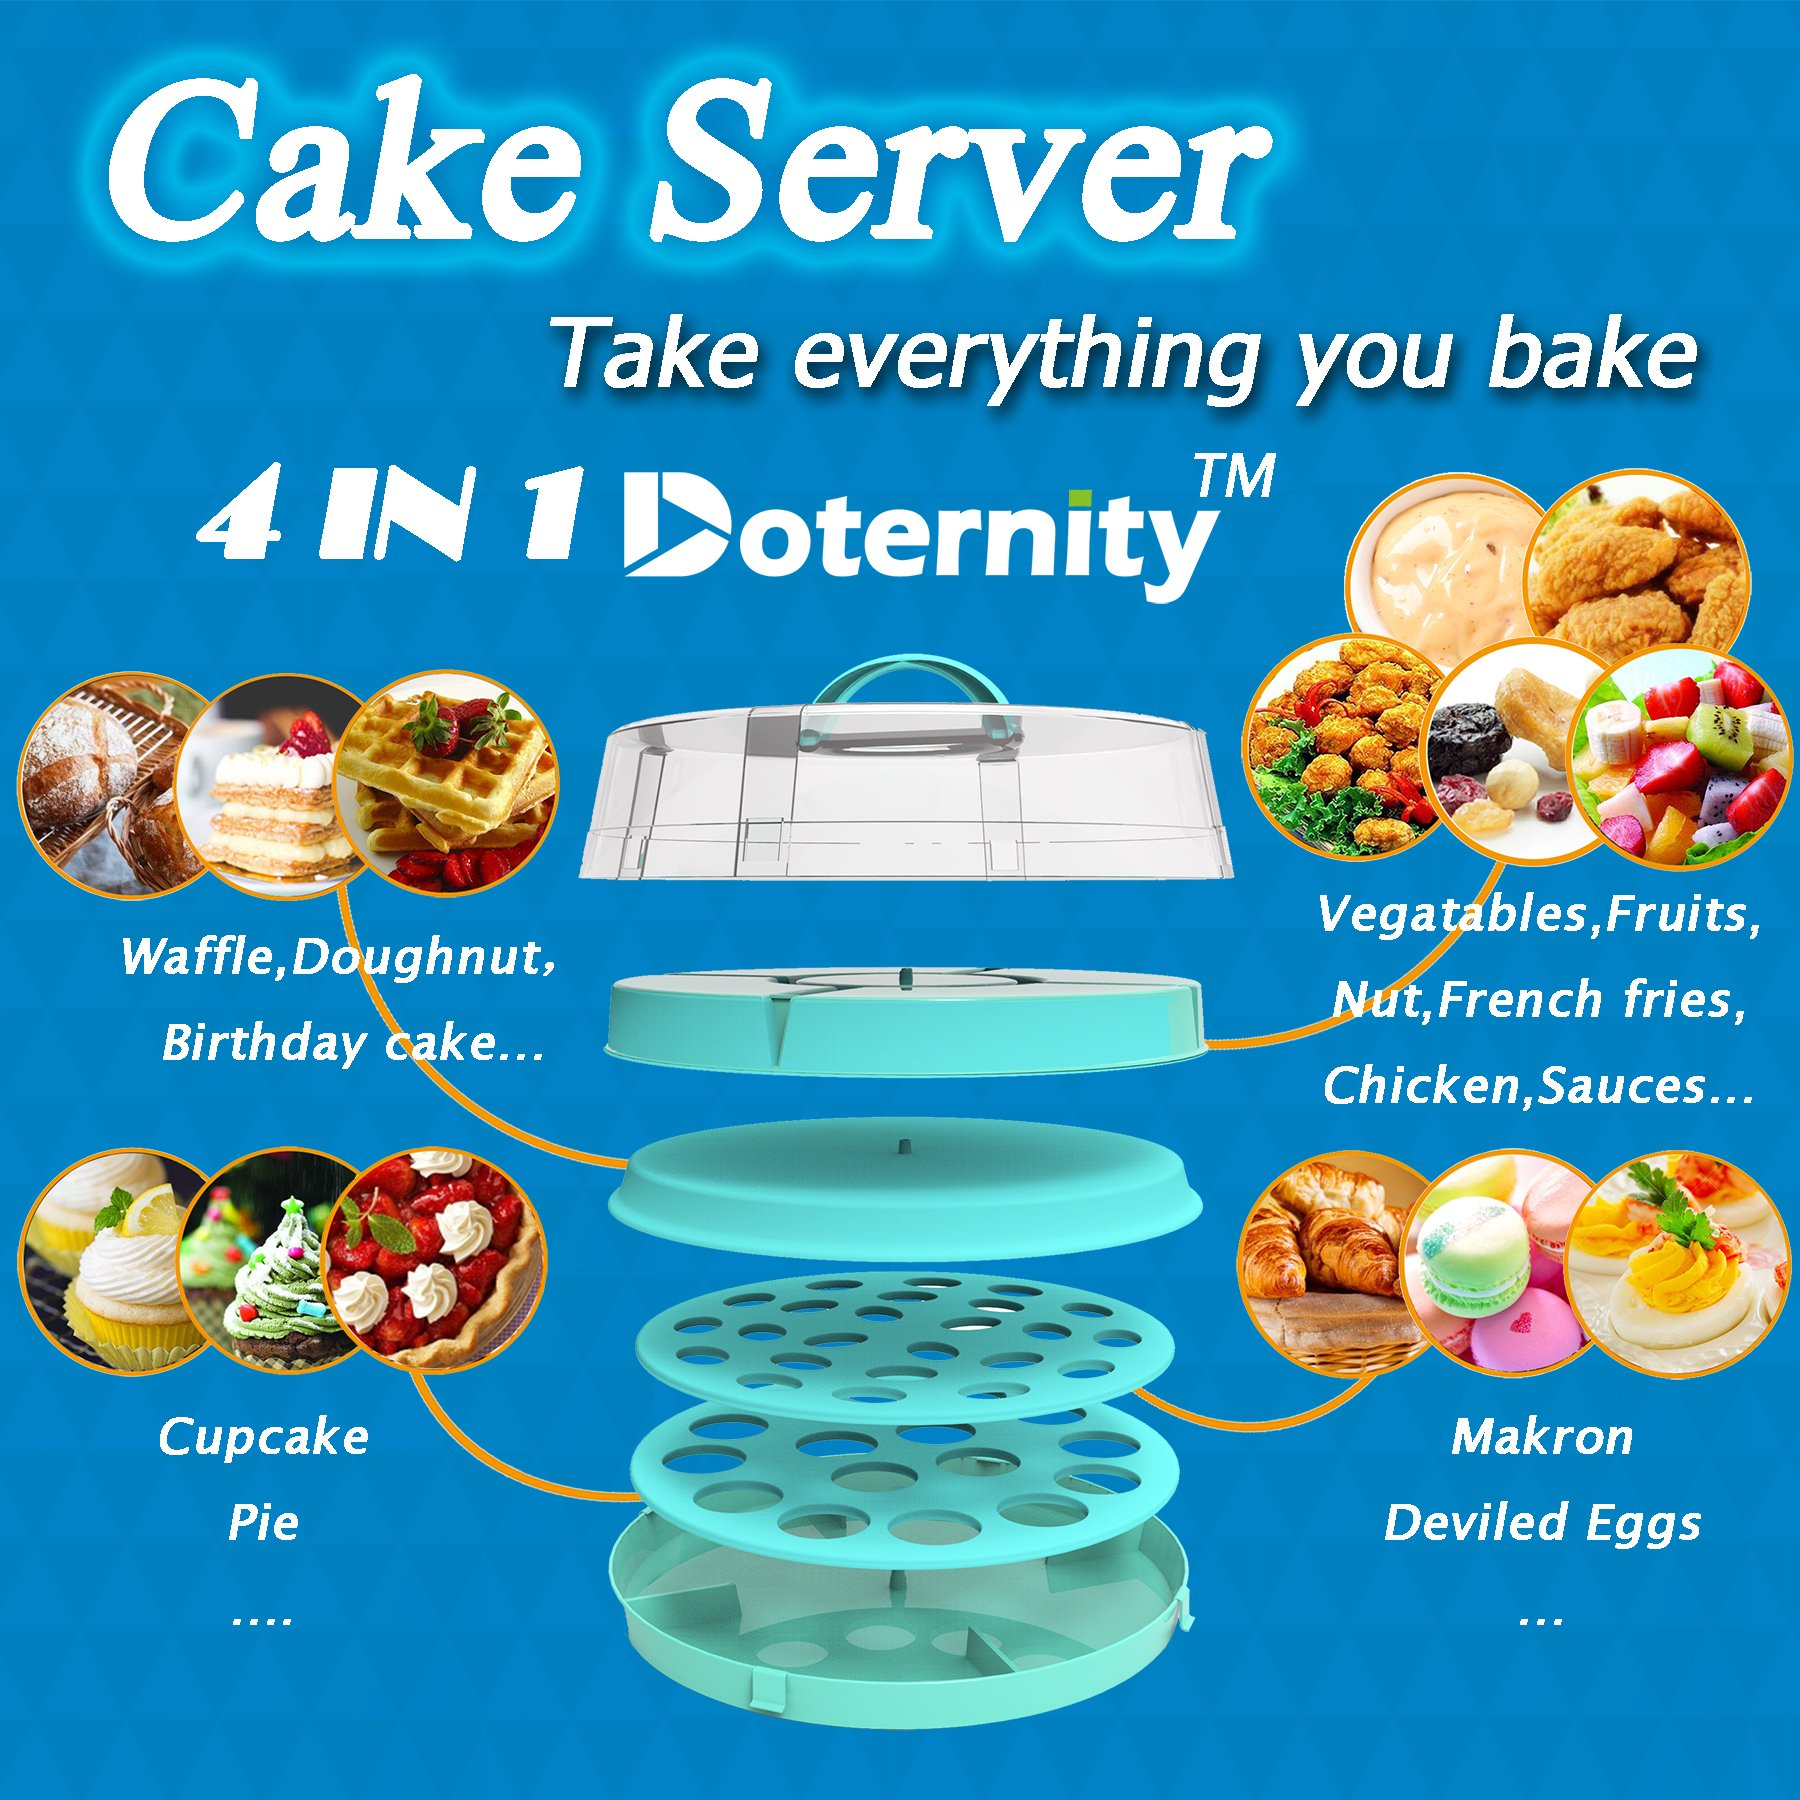 4-in-1 Cake Carrier - kitchen safe locking container - cupcake caddy - cake plate with dome - dessert tray and cover - Locking lid pies container bundt cake holder by DOTERNITY (Image #2)